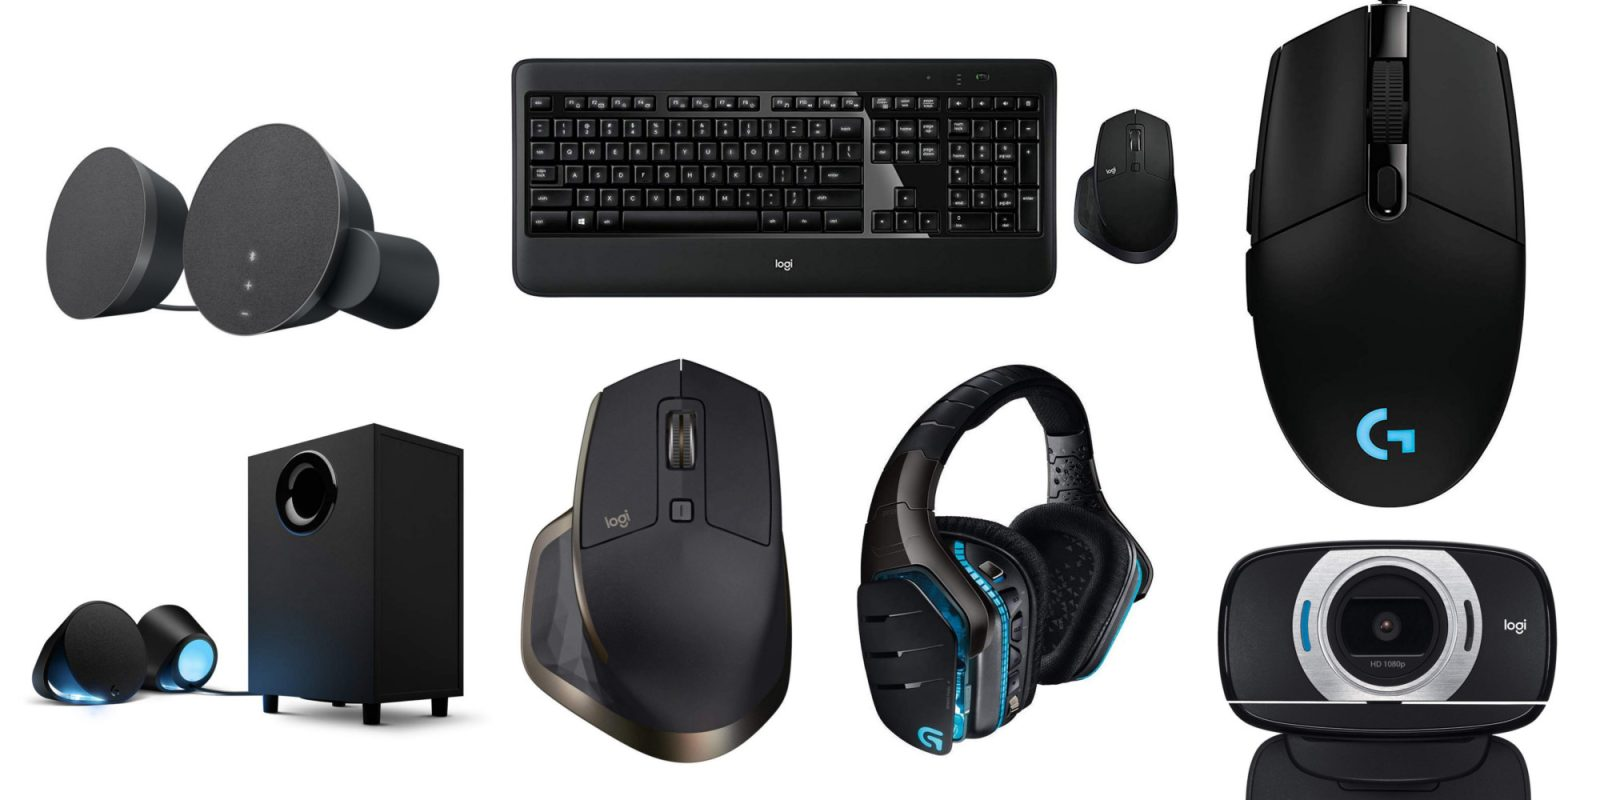 Amazon offers up to 40% off Logitech gear from $15: mice